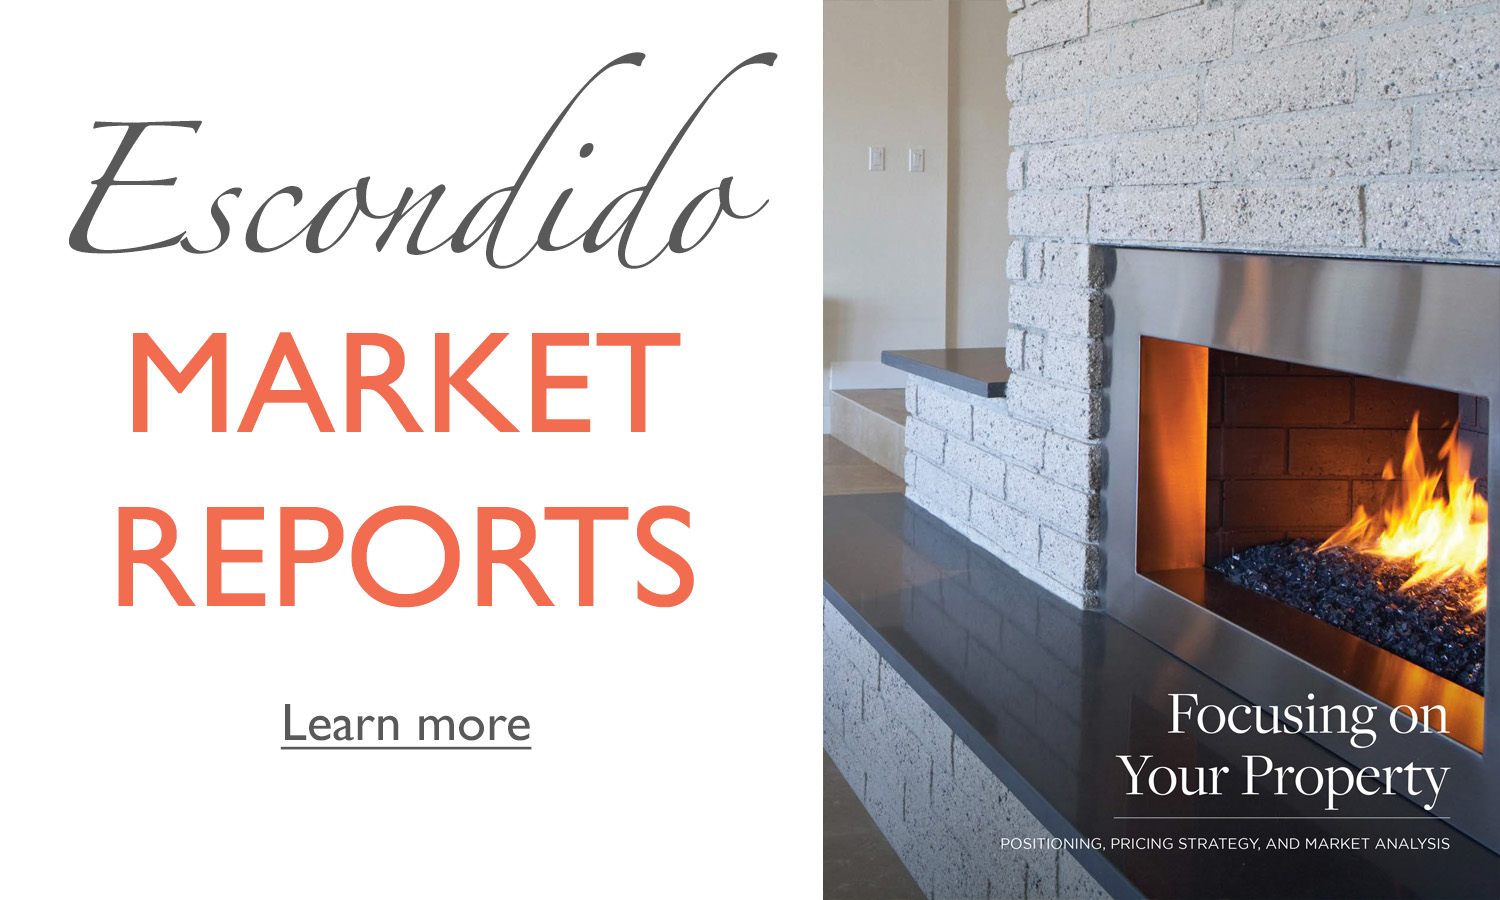 How's the real estate market in Escondido? Find out right here!